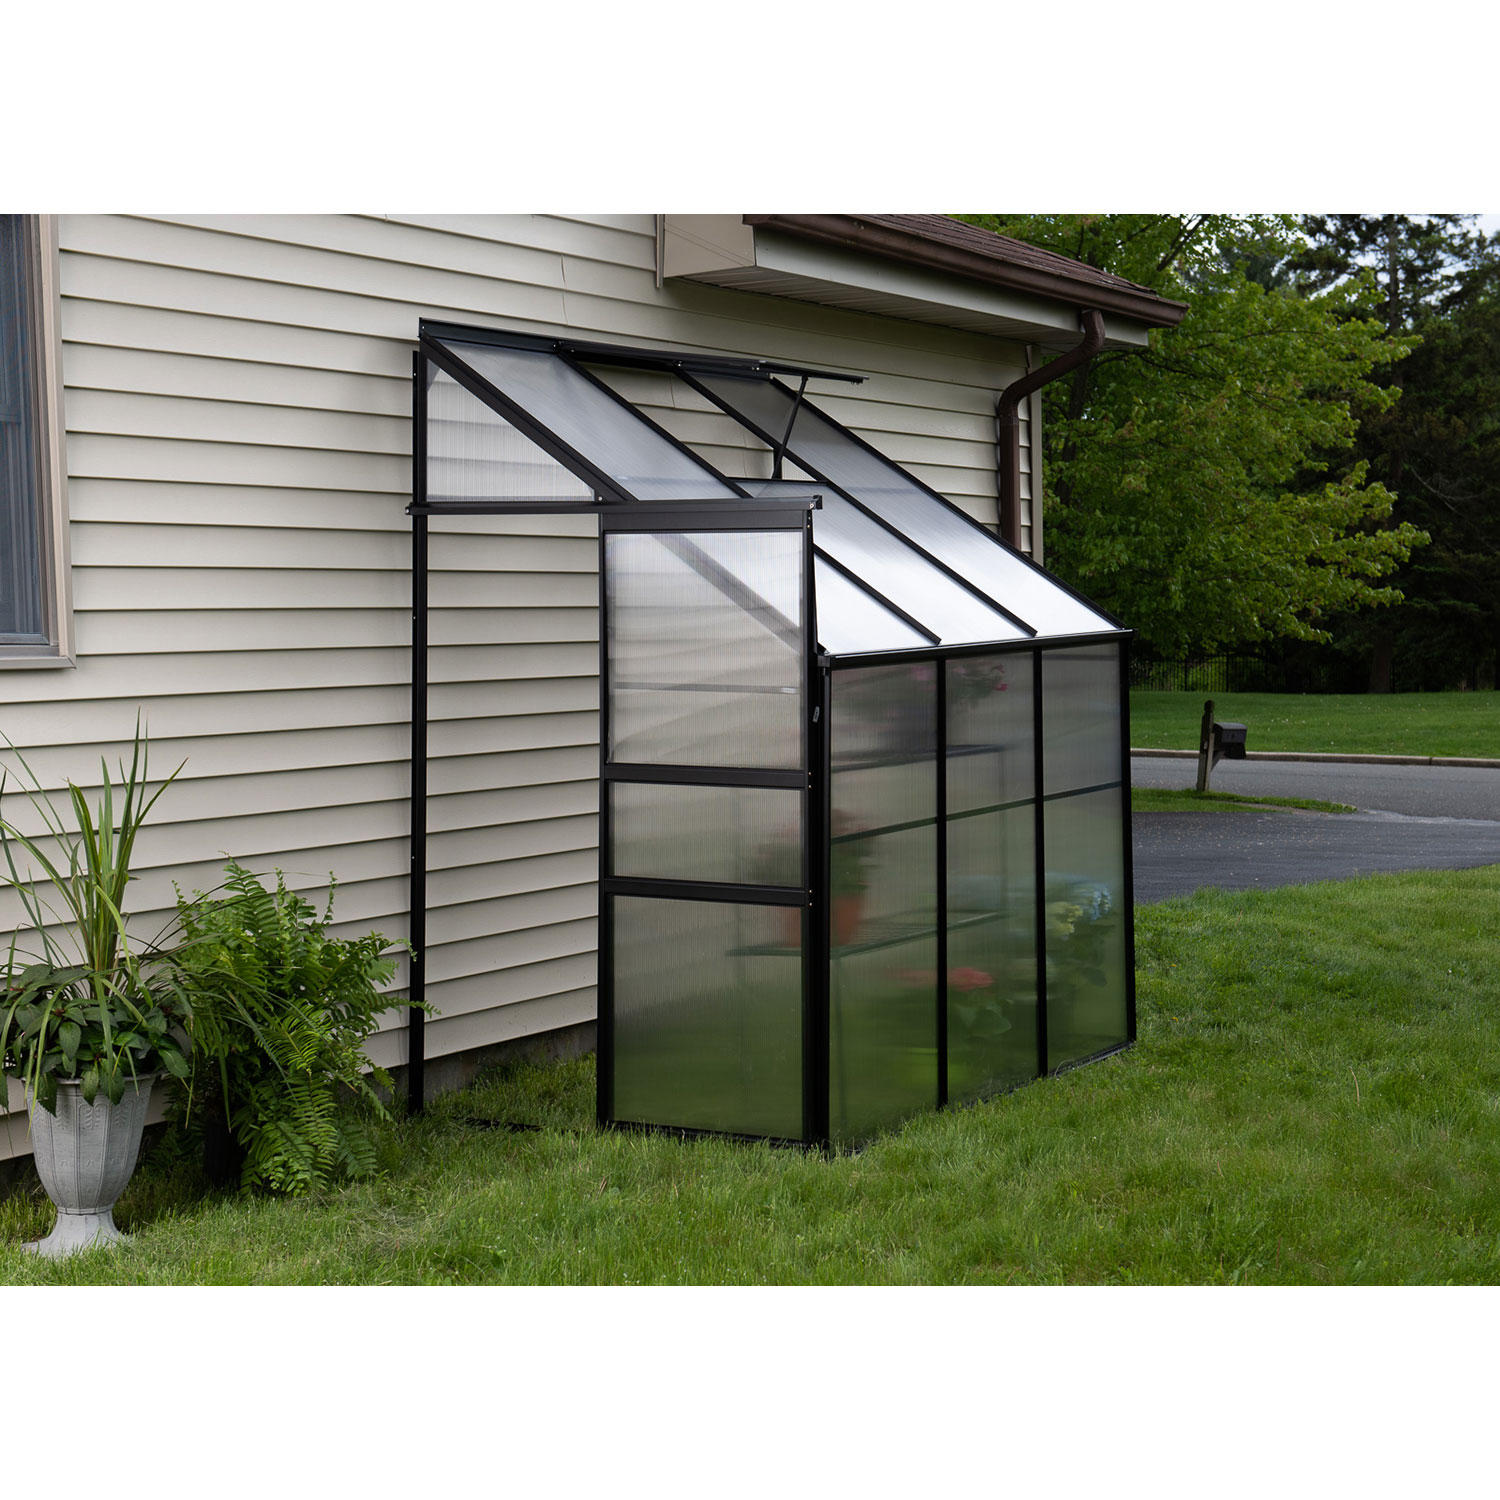 OGrow Aluminum Lean-To Greenhouse